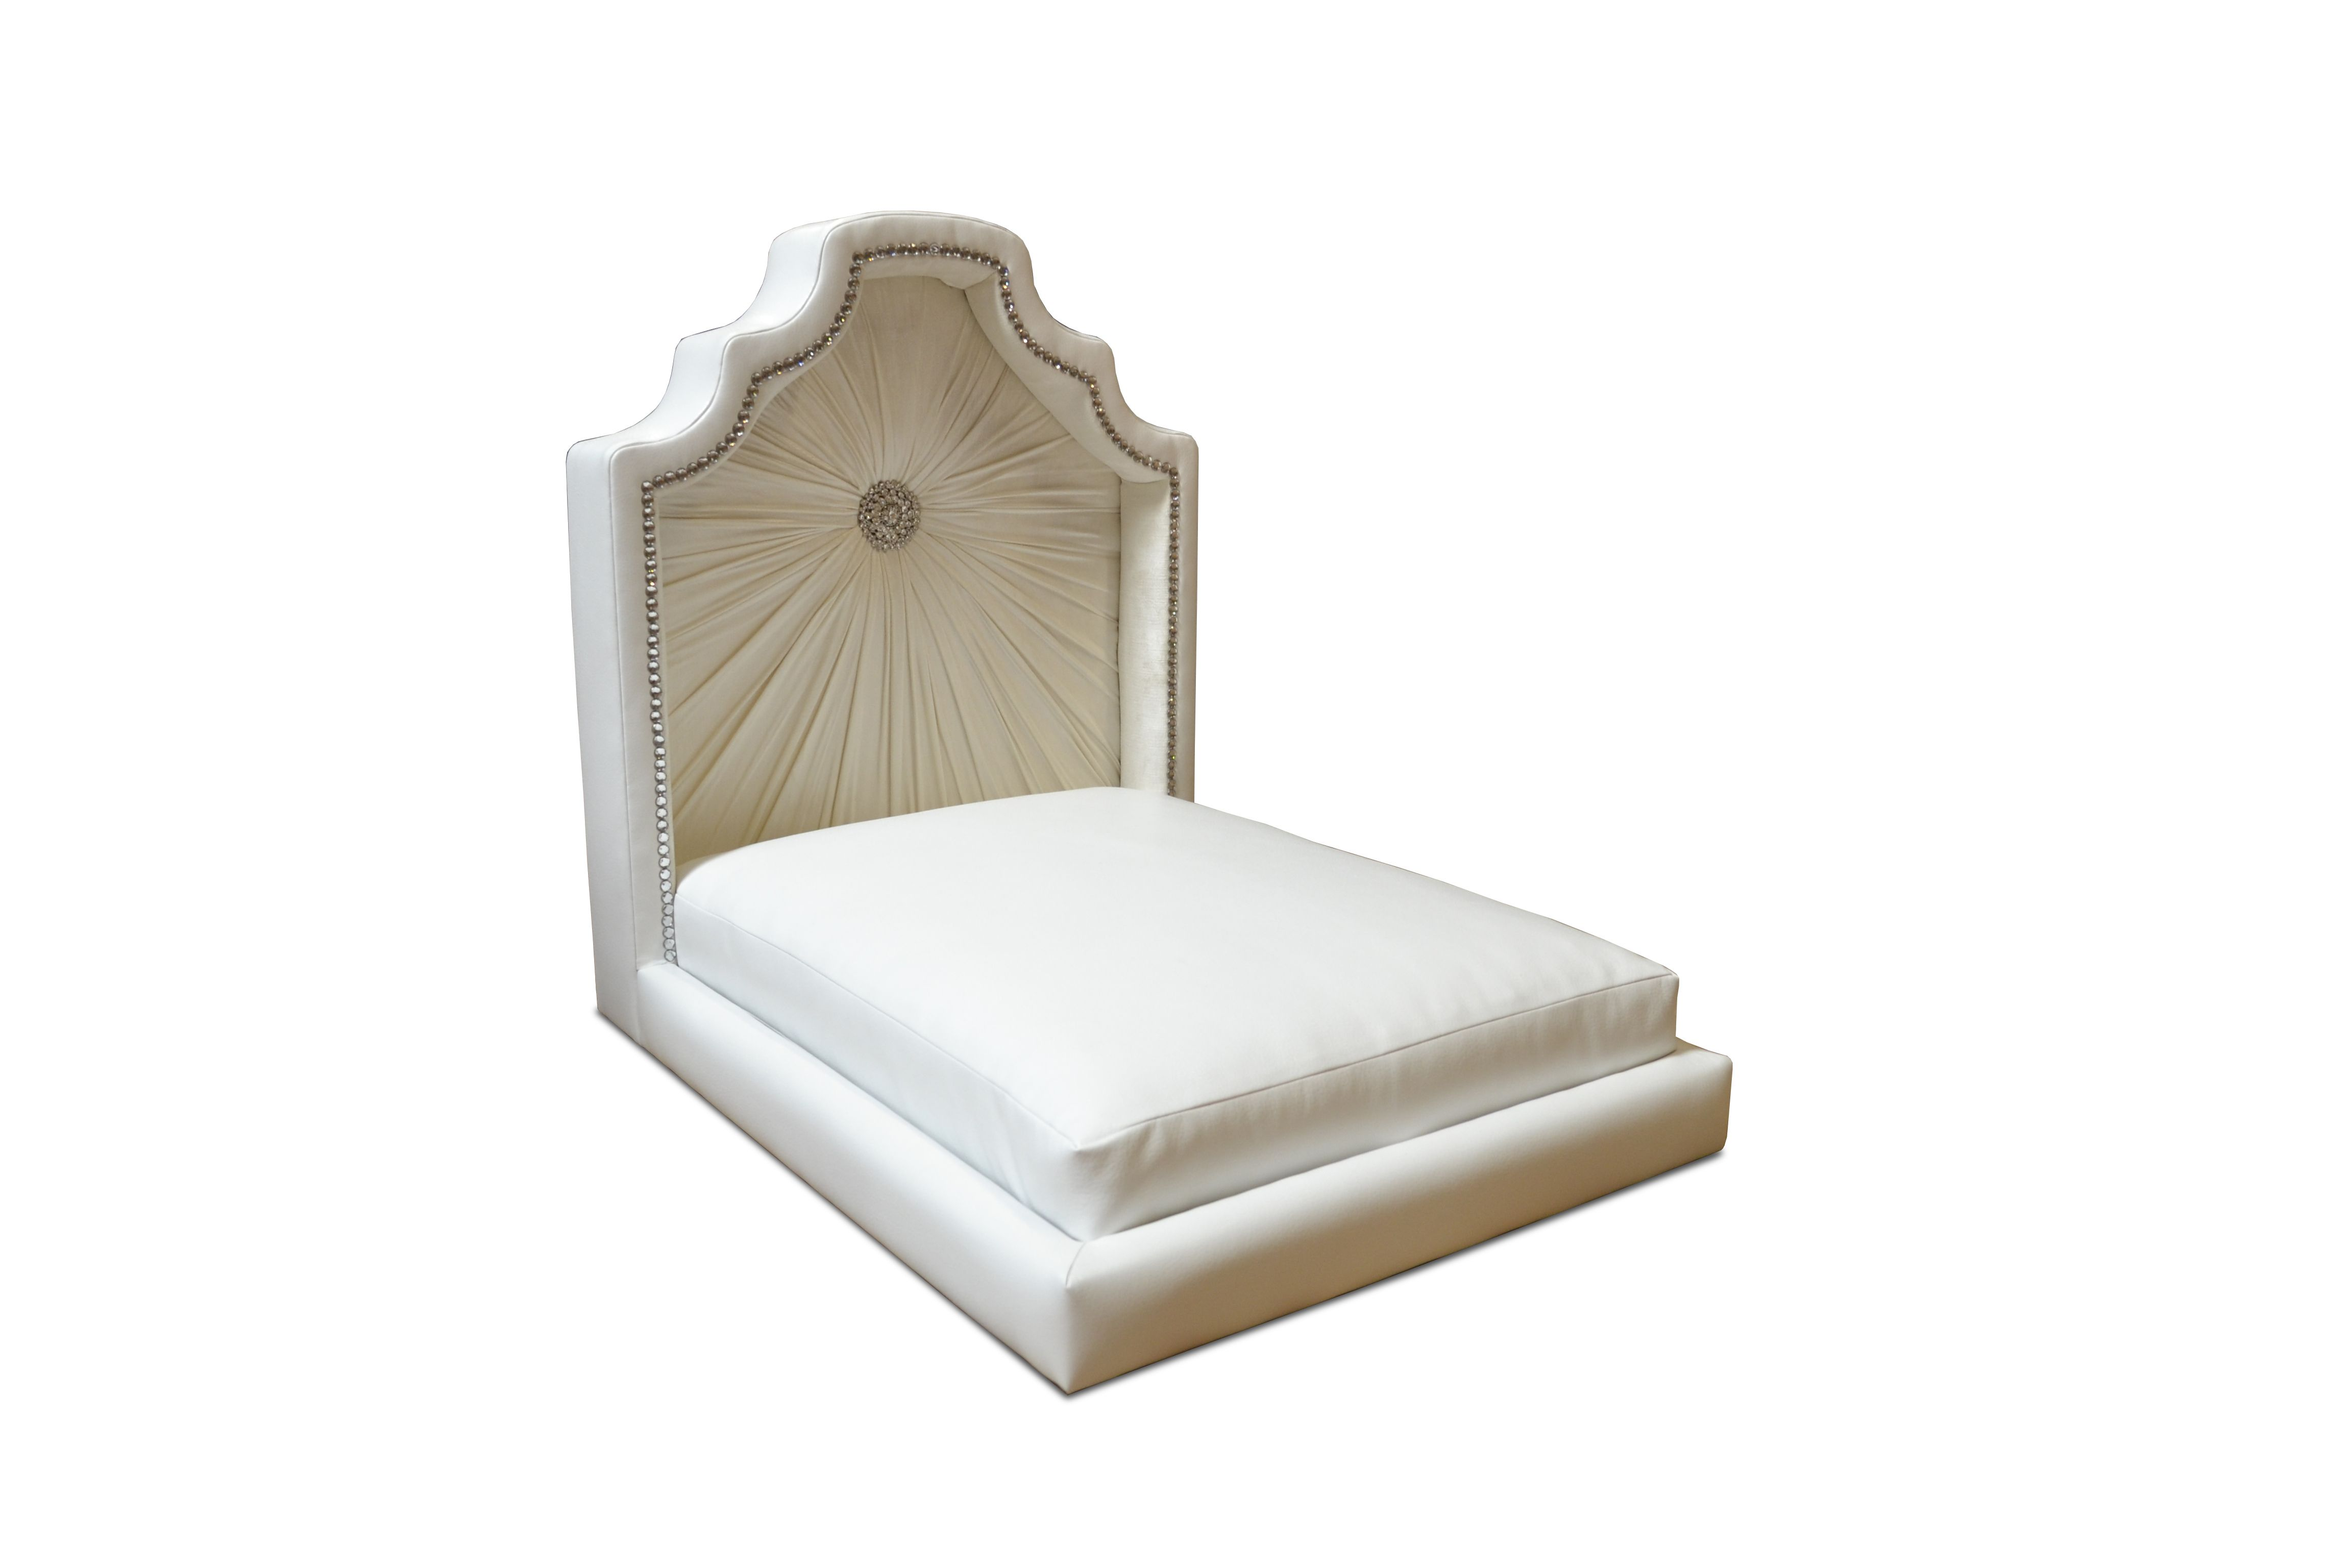 Regency Dog Bed Hooded dogie bed with brooch in white